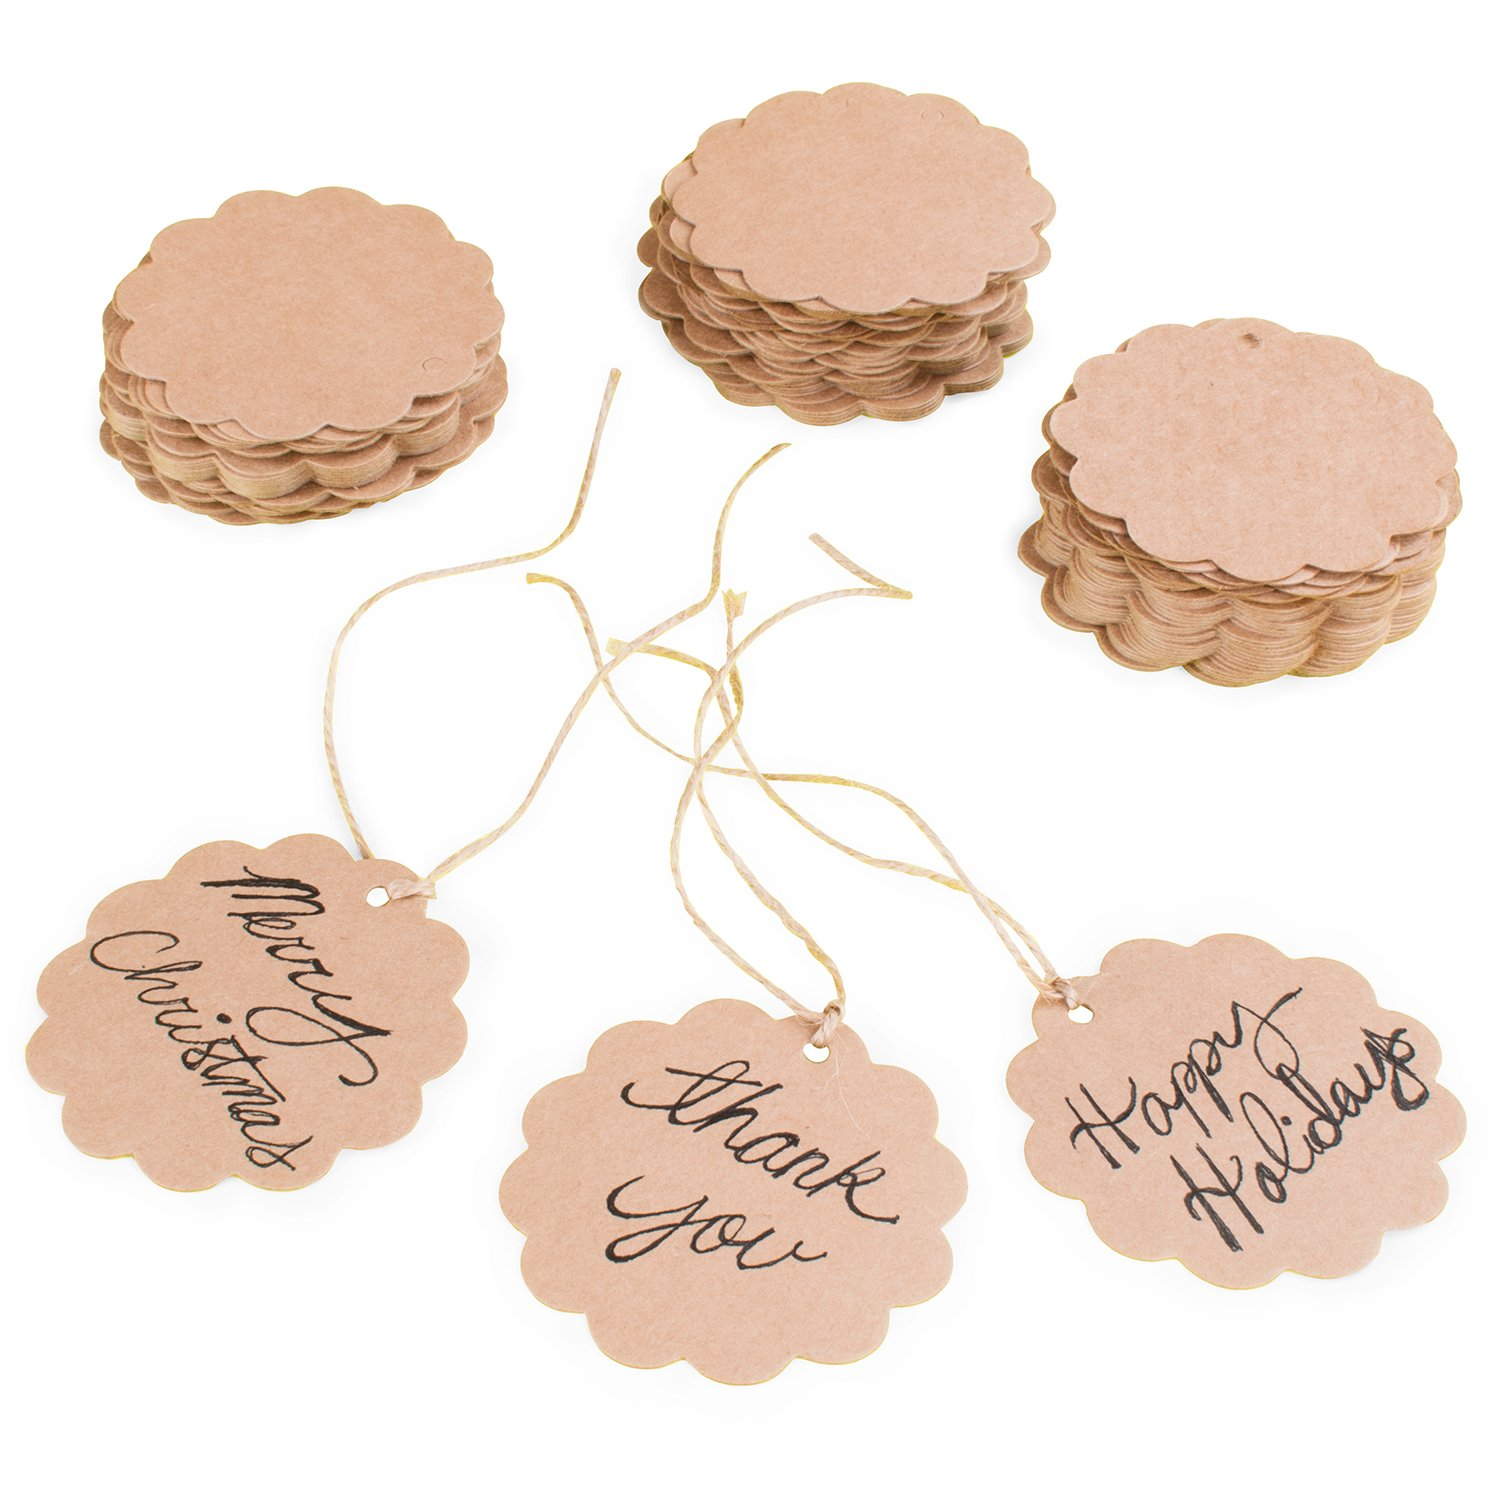 Brown Craft Scalloped Paper Label Tags with Jute Twines String for Birthday Party, Wedding Decoration Gifts, Organizing, Arts & Crafts (100 Pack) Super Z Outlet SZ082